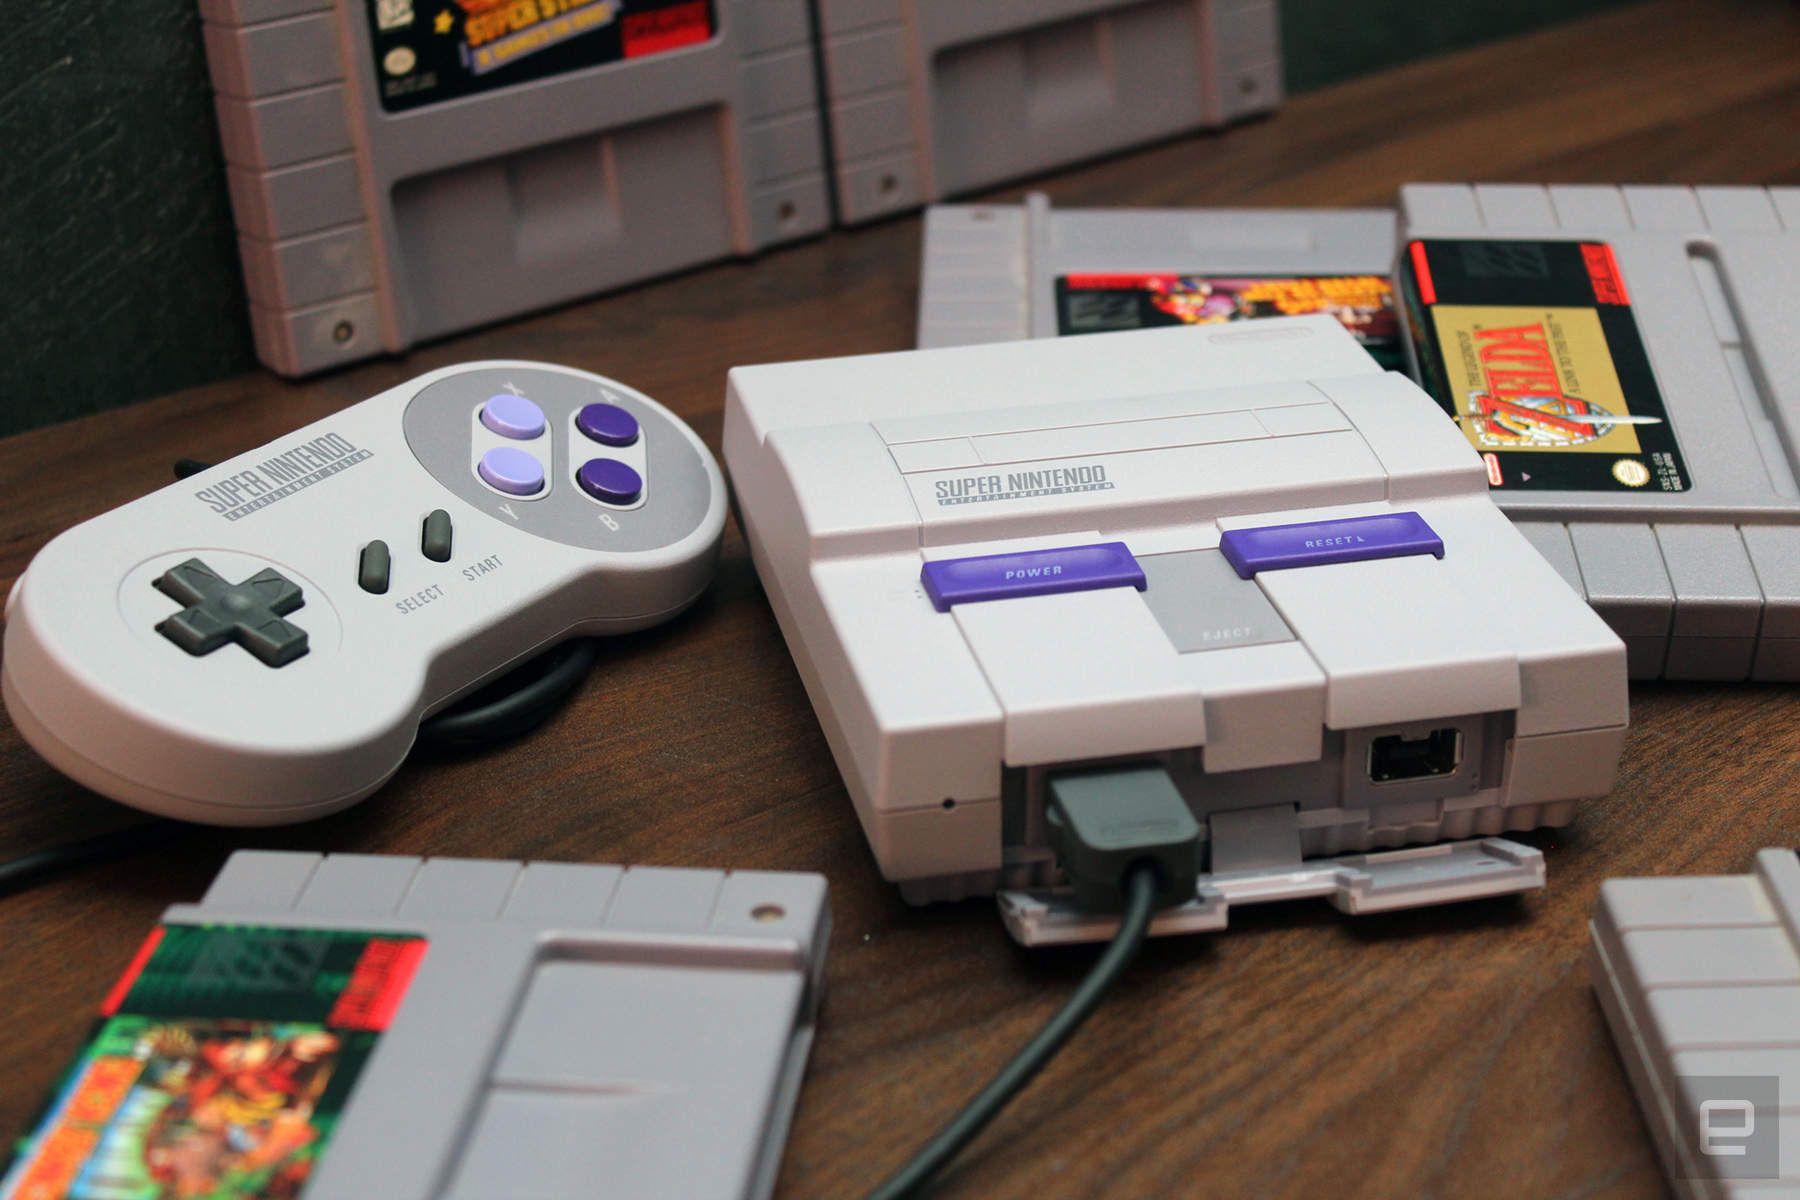 The success of last year s NES Classic Edition clearly took Nintendo by  surprise. The company was completely incapable of meeting demand c9d566f7bf0f1